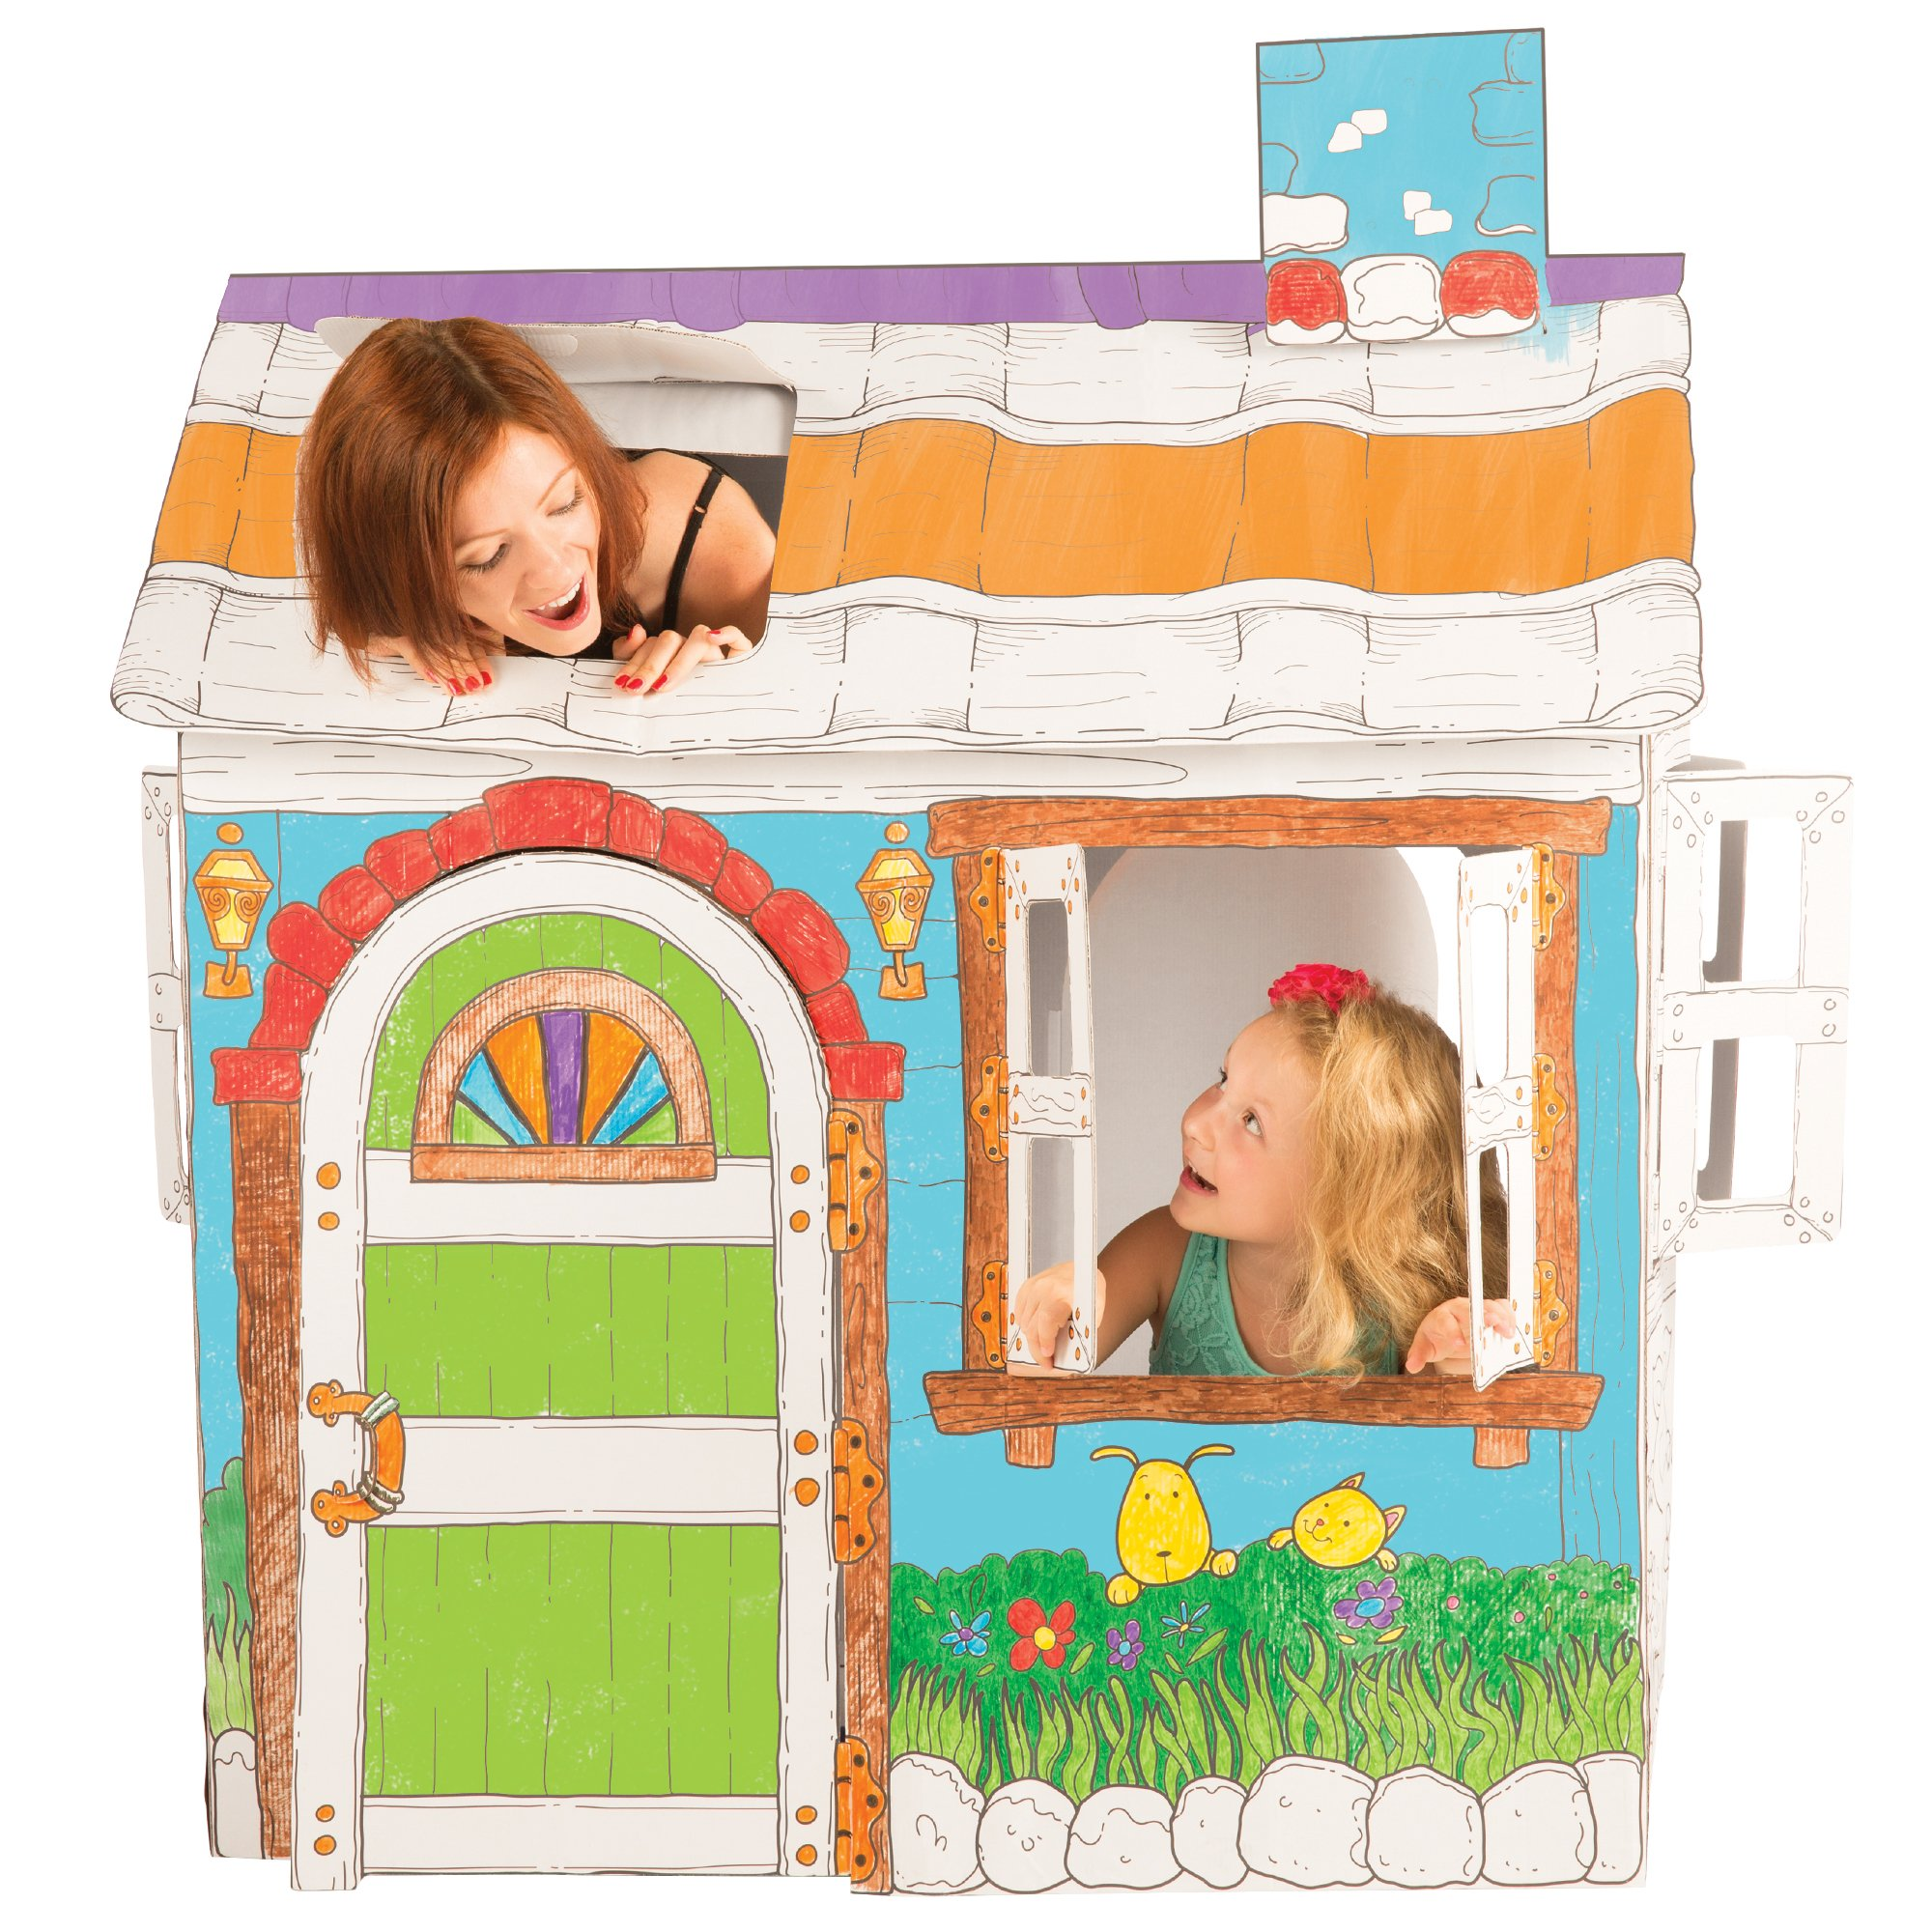 Cardboard Playhouse for Kids to Color - Create an Easy Play House with Included Markers and Over 50 Sticker Decorations! by Discover with Dr. Cool